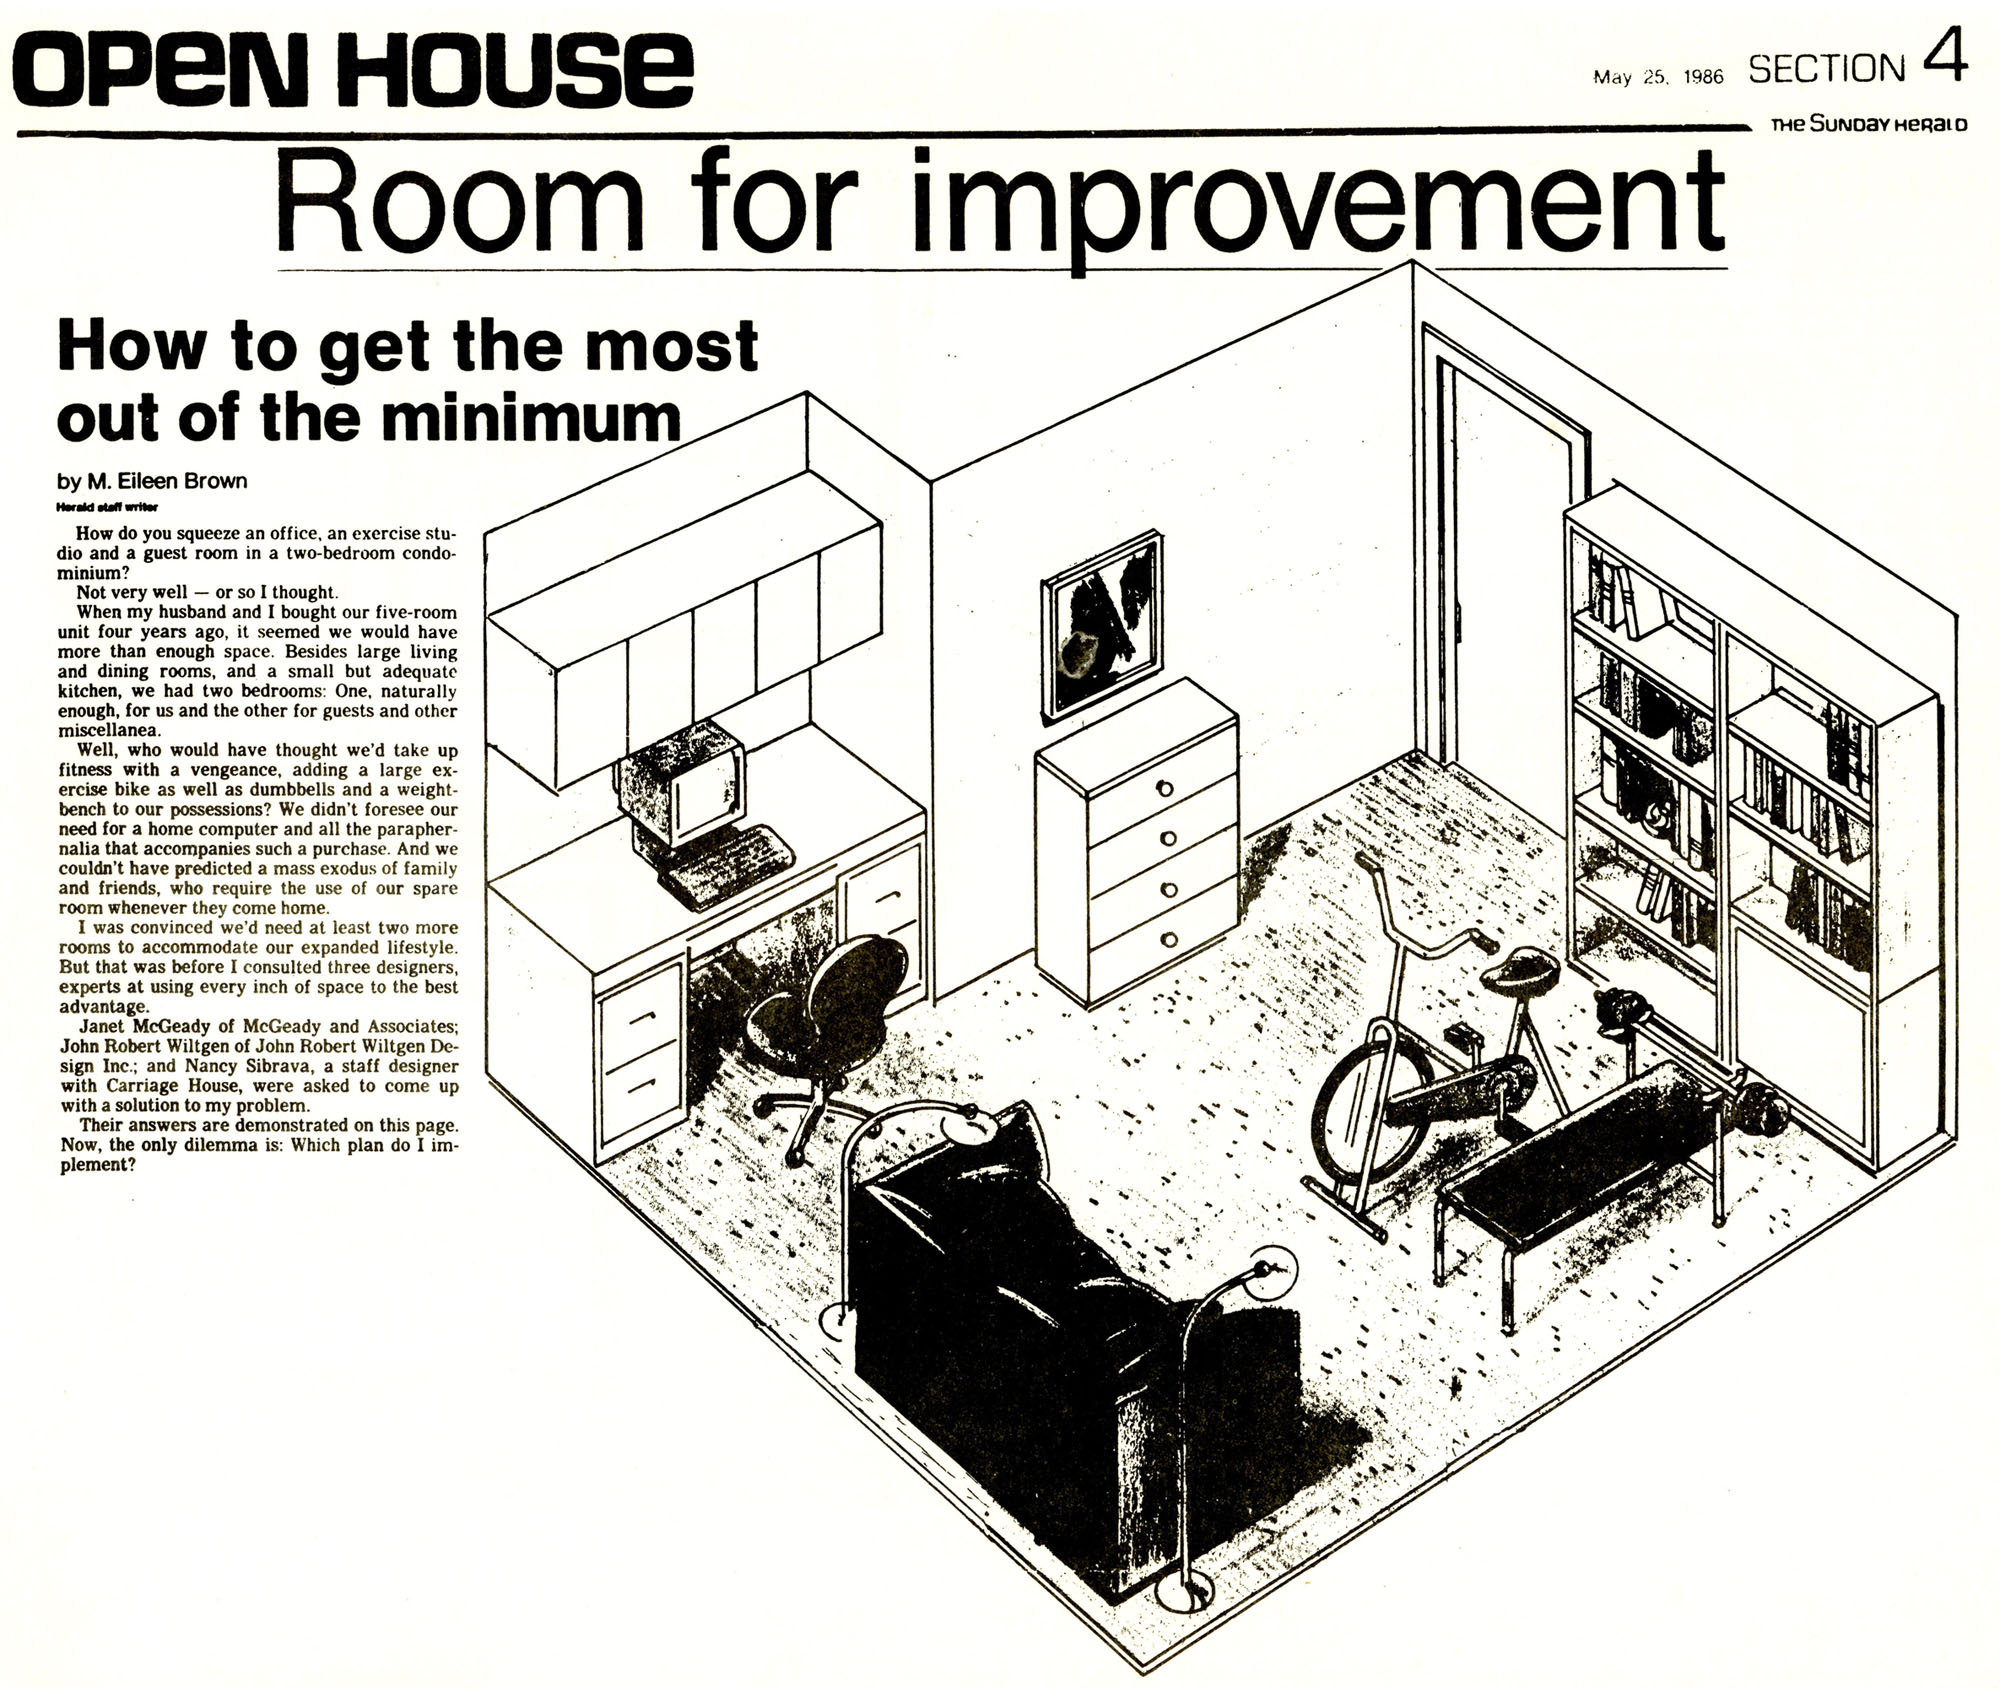 may25,1986 sunday herald- Room for Improvement